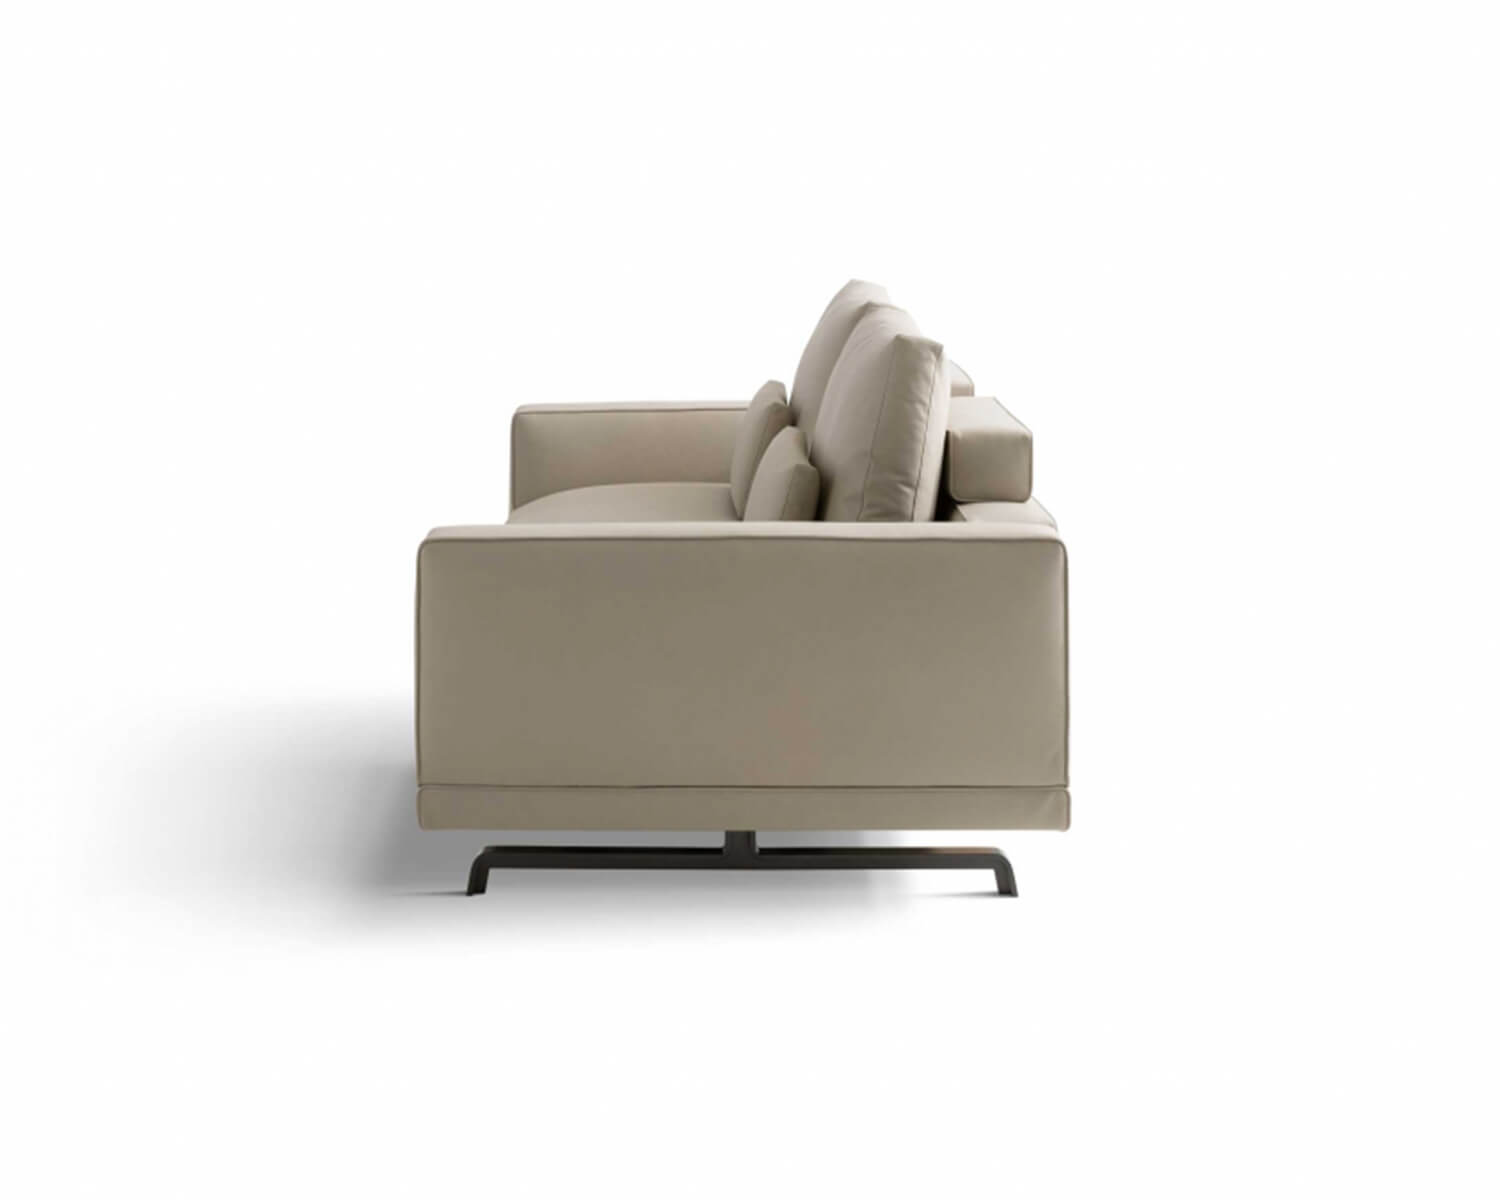 Side view of Beige Octave two-seater sofa on a white background